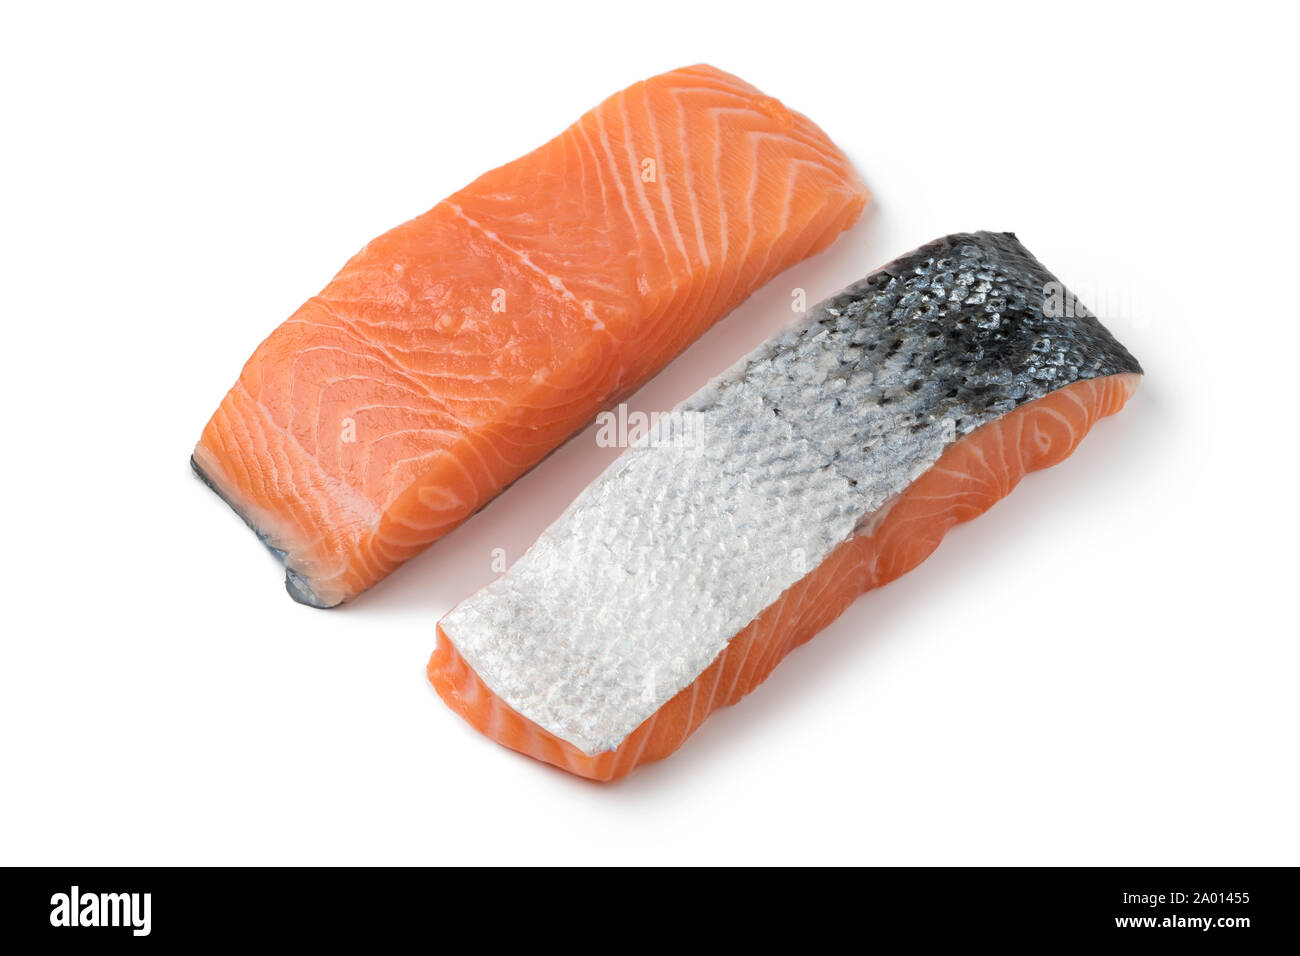 Fresh raw salmon steaks isolated on white background Stock Photo